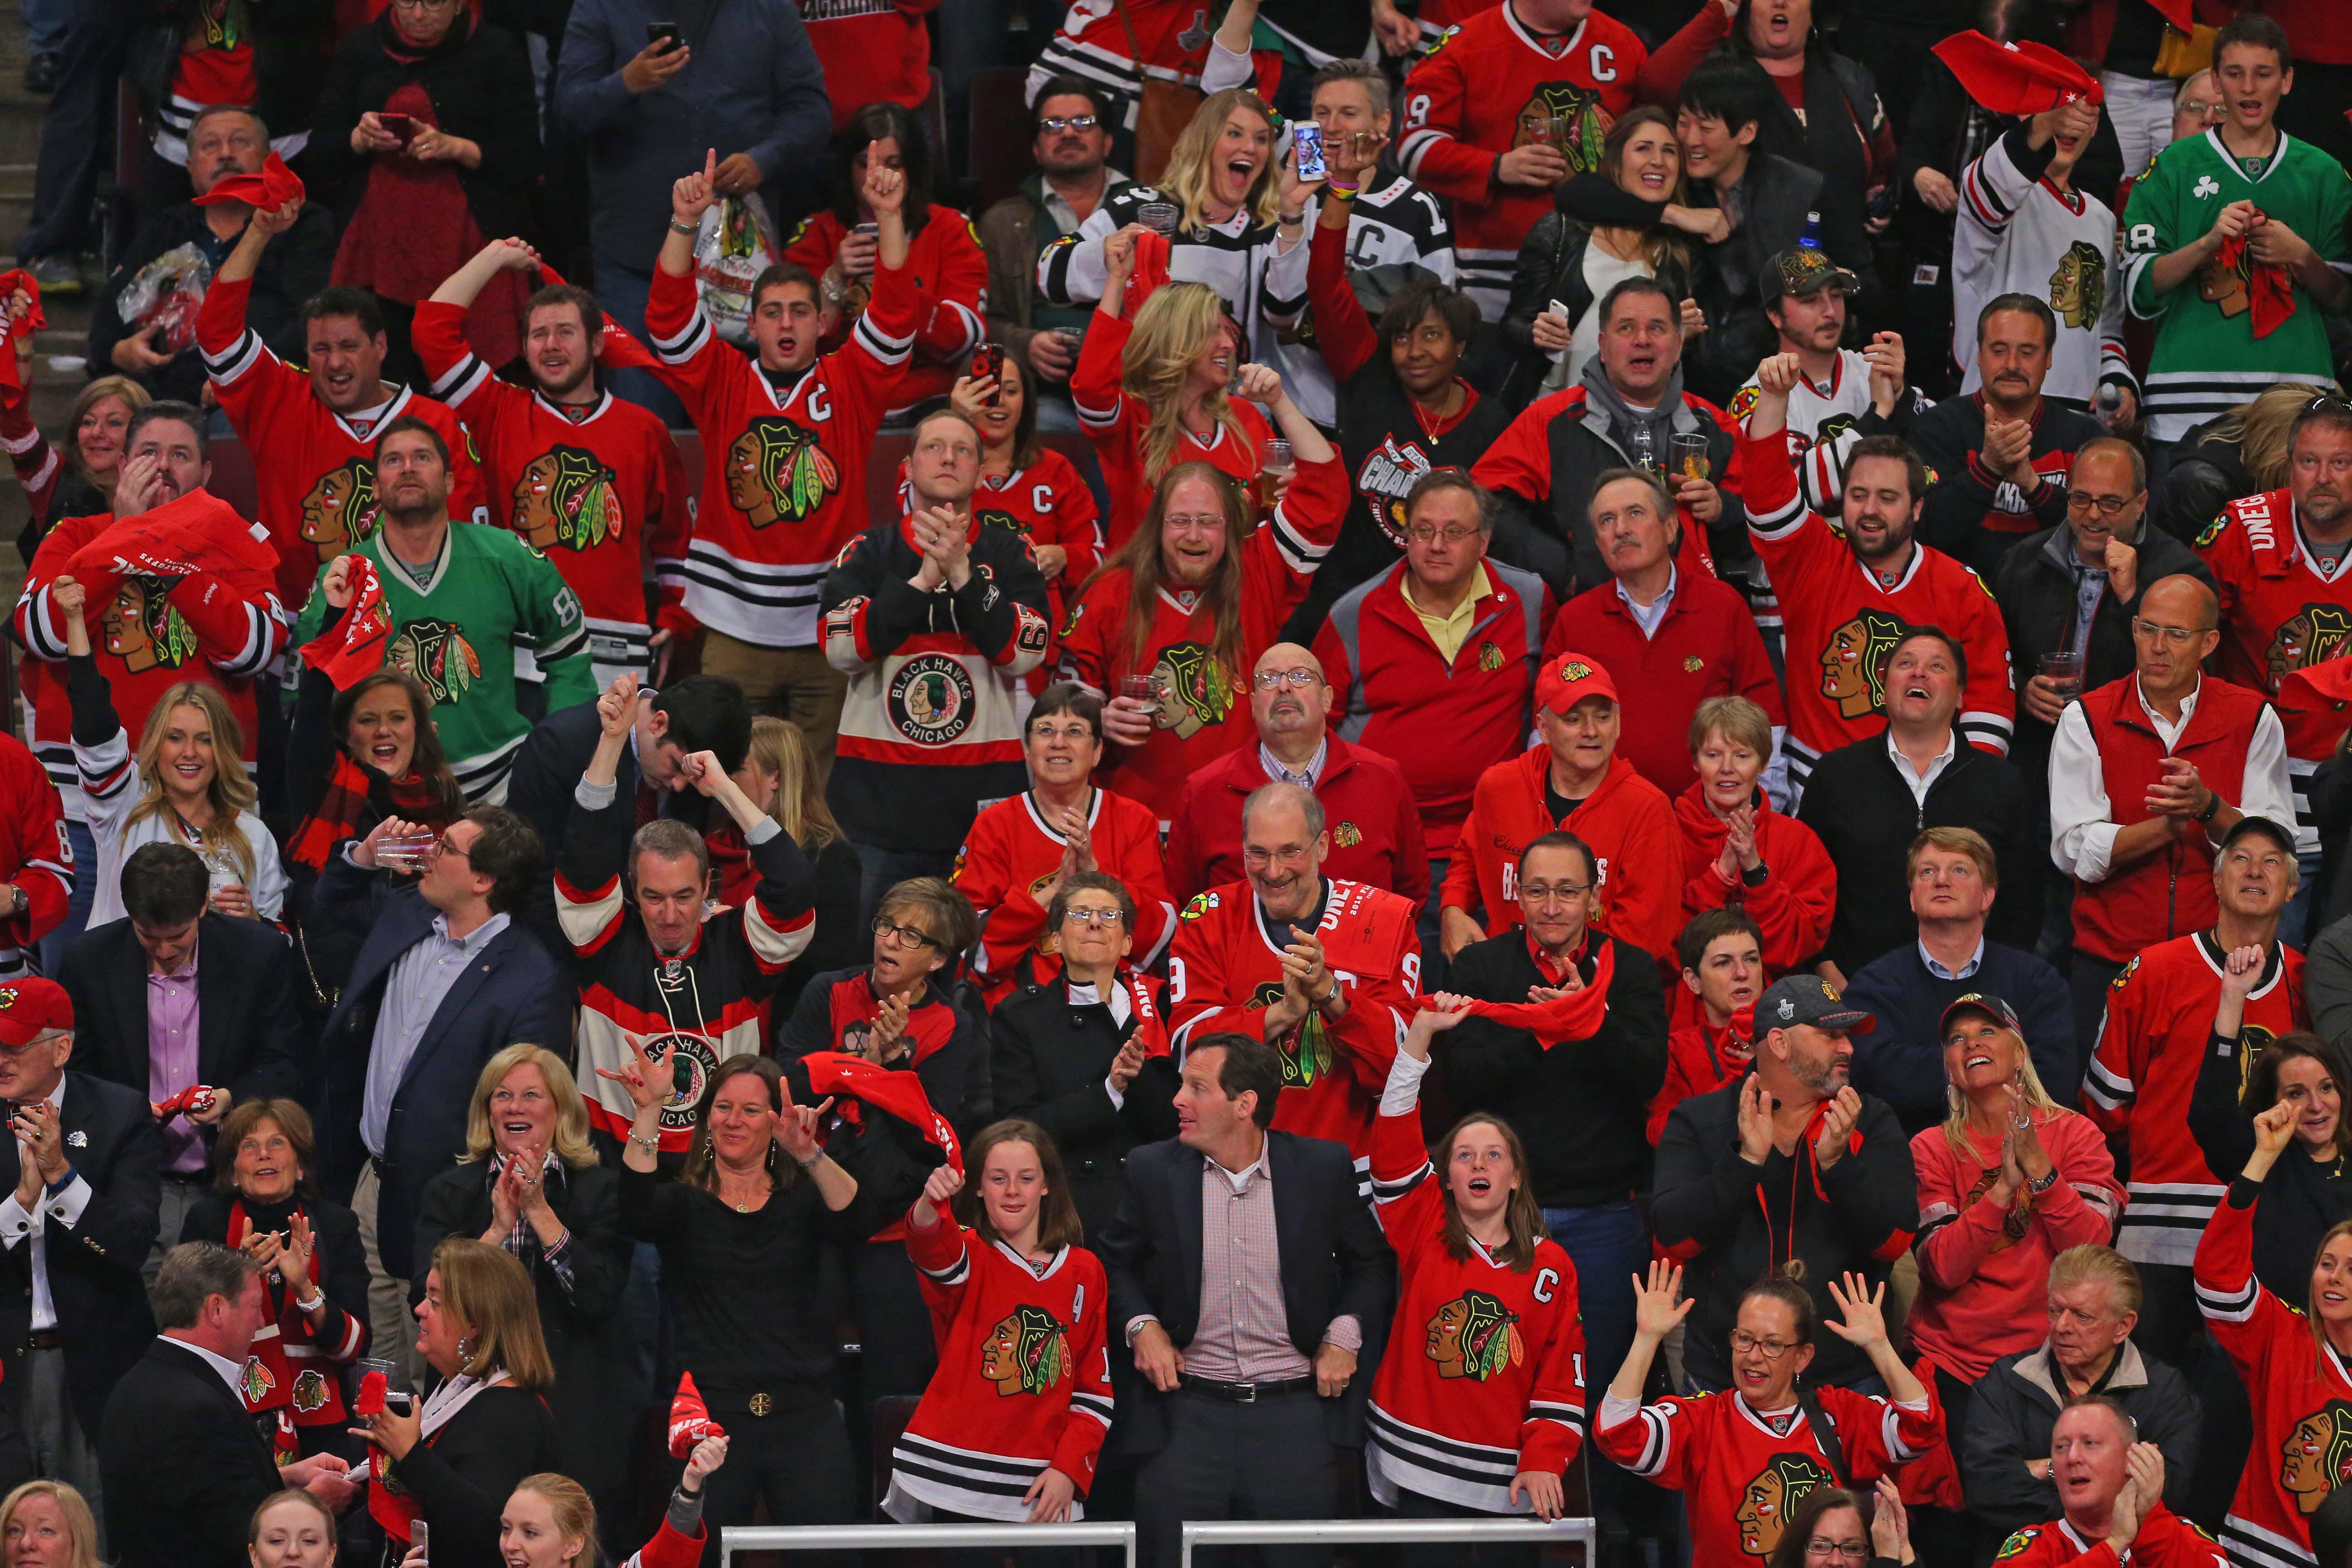 9266216-nhl-stanley-cup-playoffs-st.-louis-blues-at-chicago-blackhawks